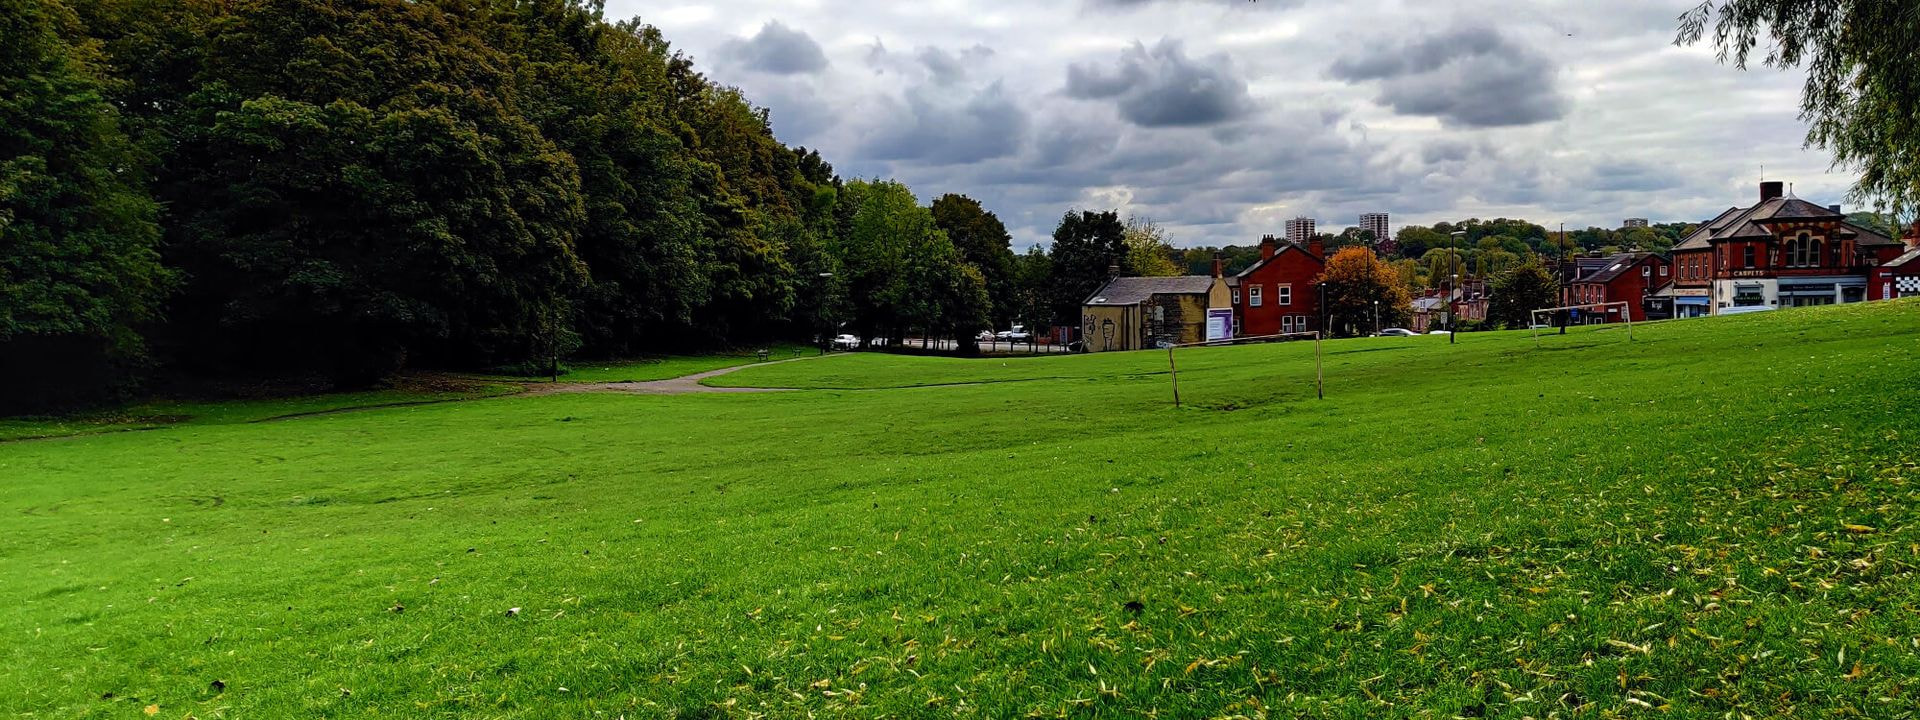 Grassing park at Burley Village Green with houses in the distance.